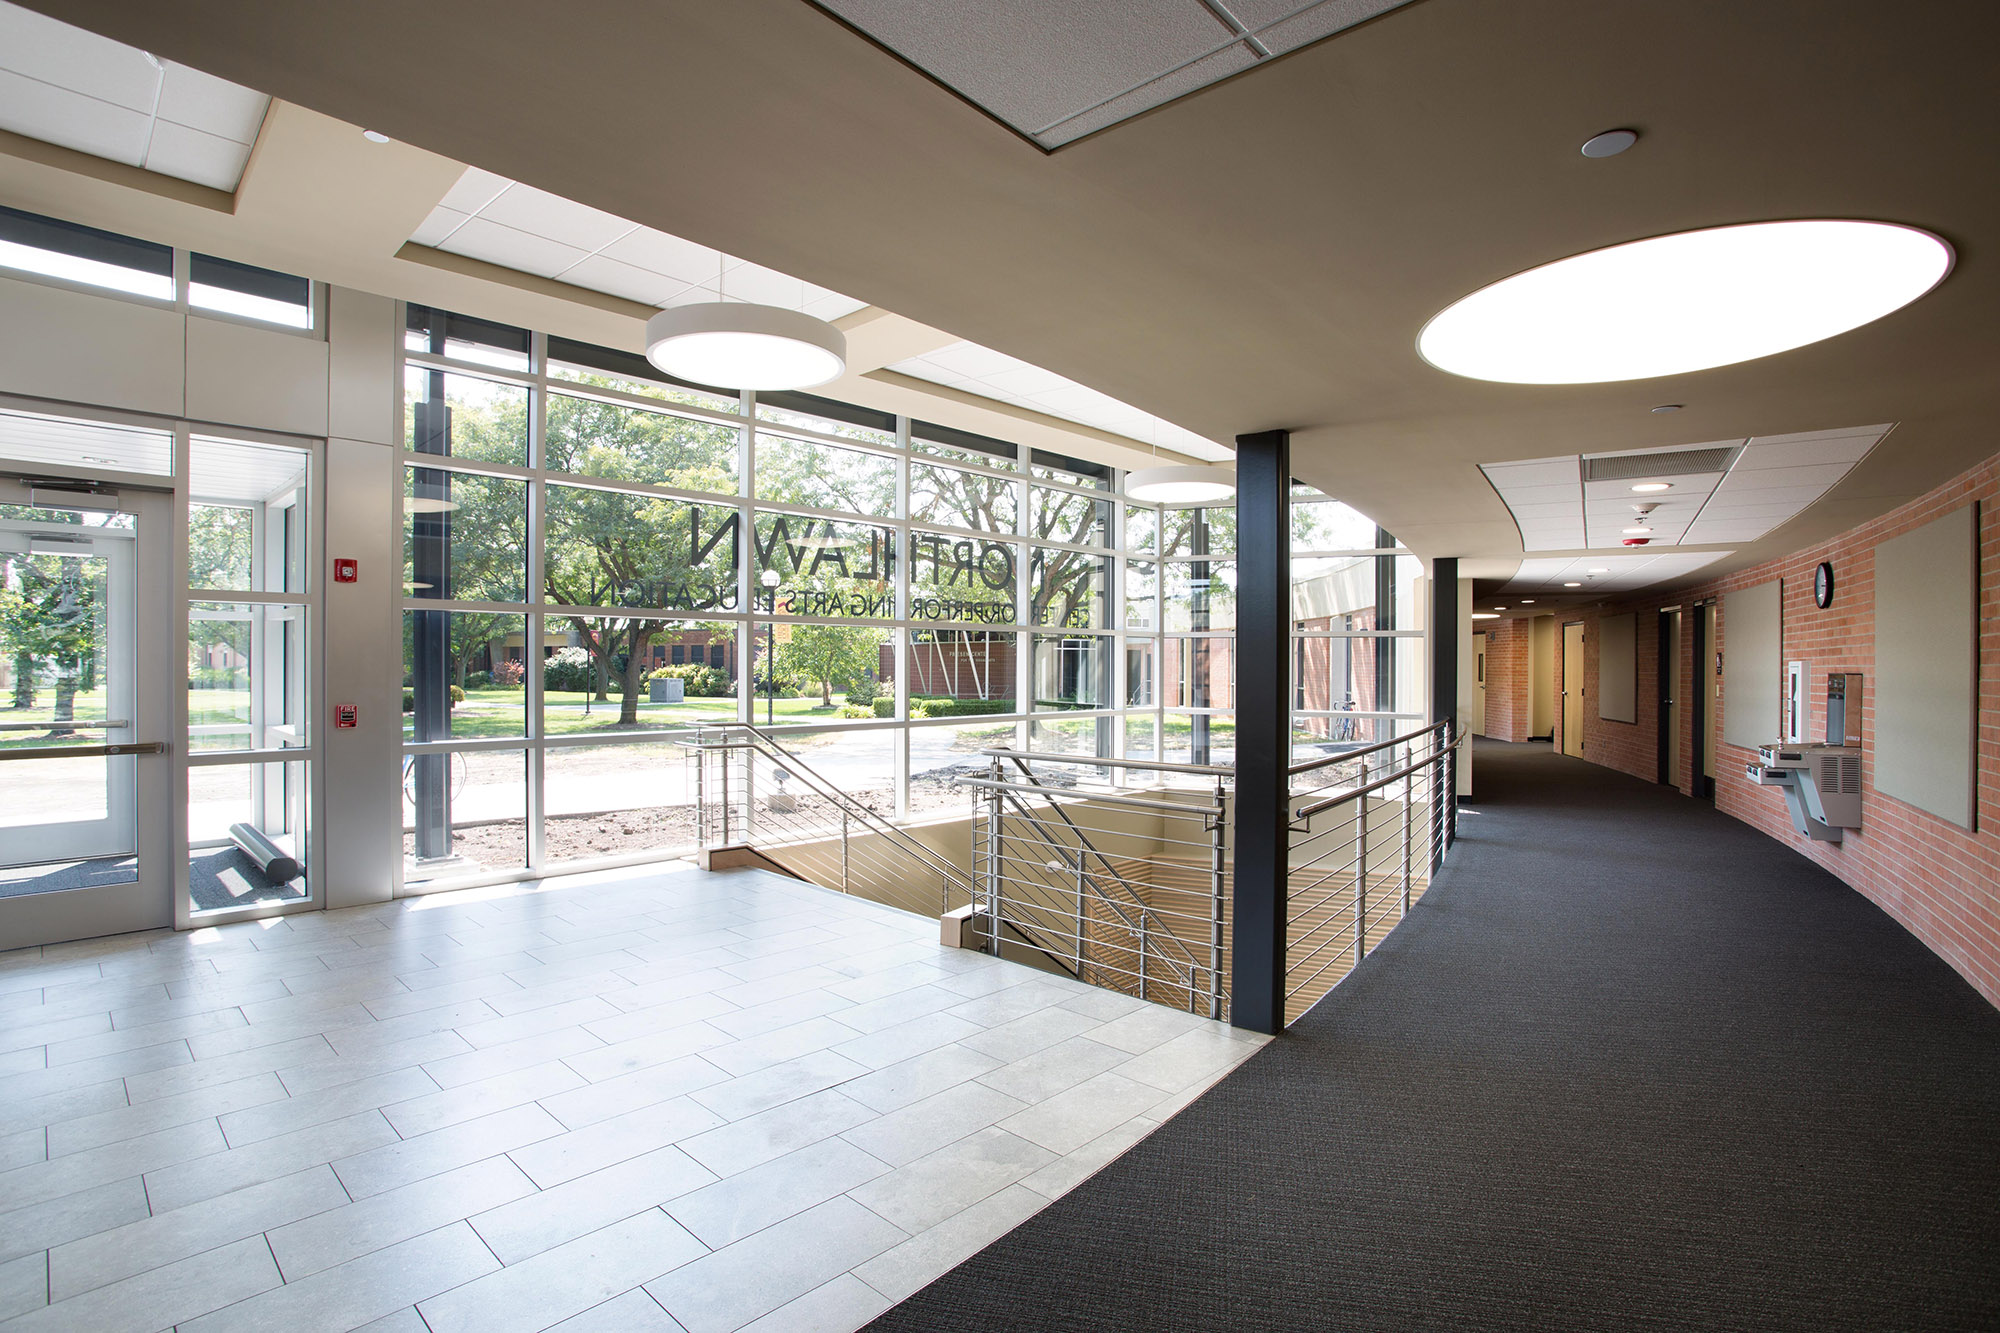 Keim Center entry interior